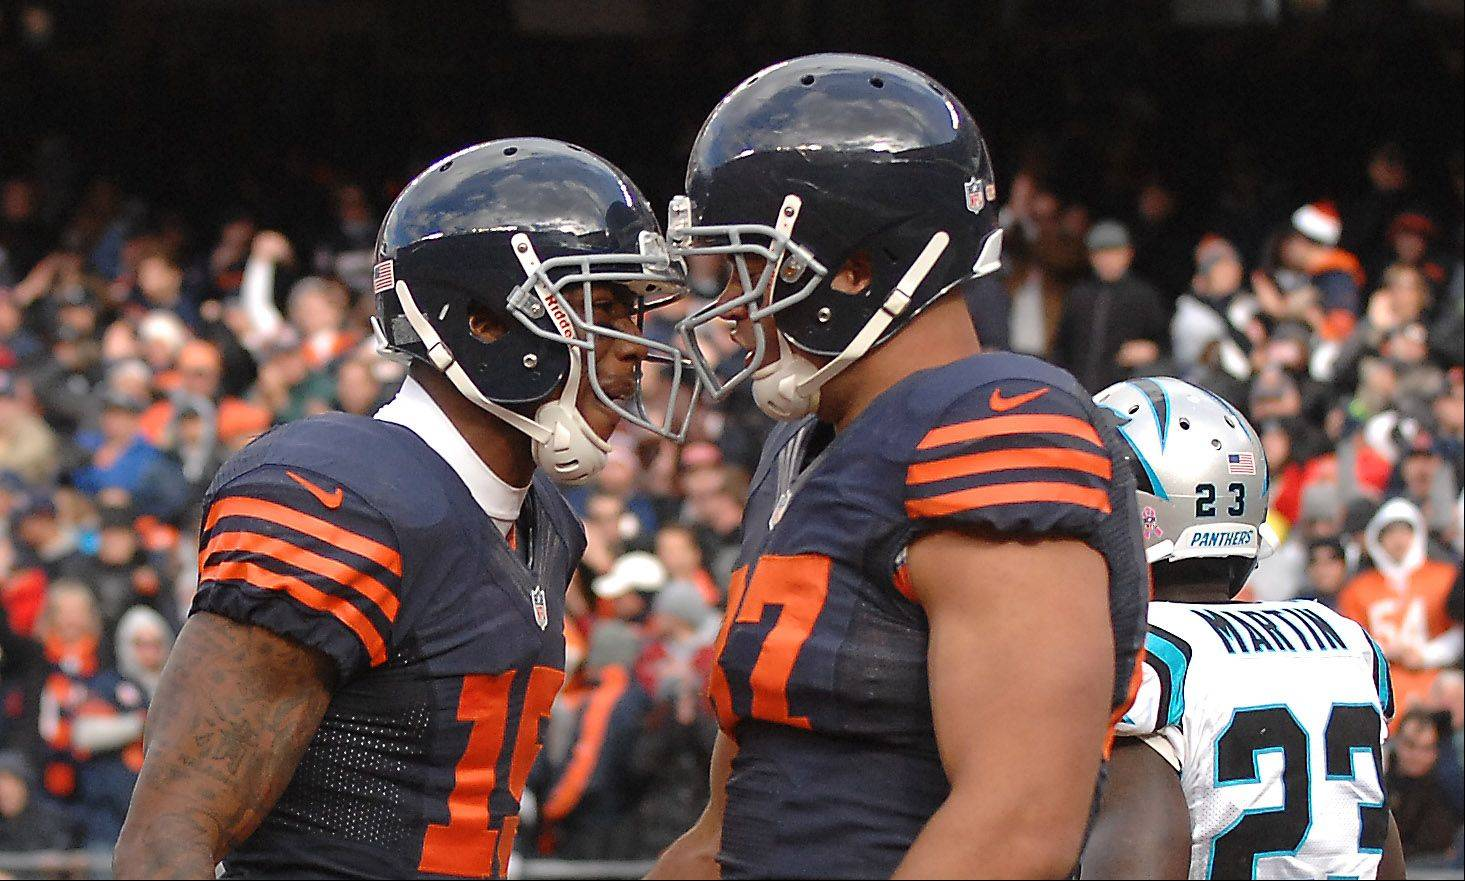 Bears wide receiver Brandon Marshall (15) congratulates teammate Kellen Davis after Davis caught a touchdown pass against Carolina at Soldier Field. The Bears cut Davis on Wednesday.